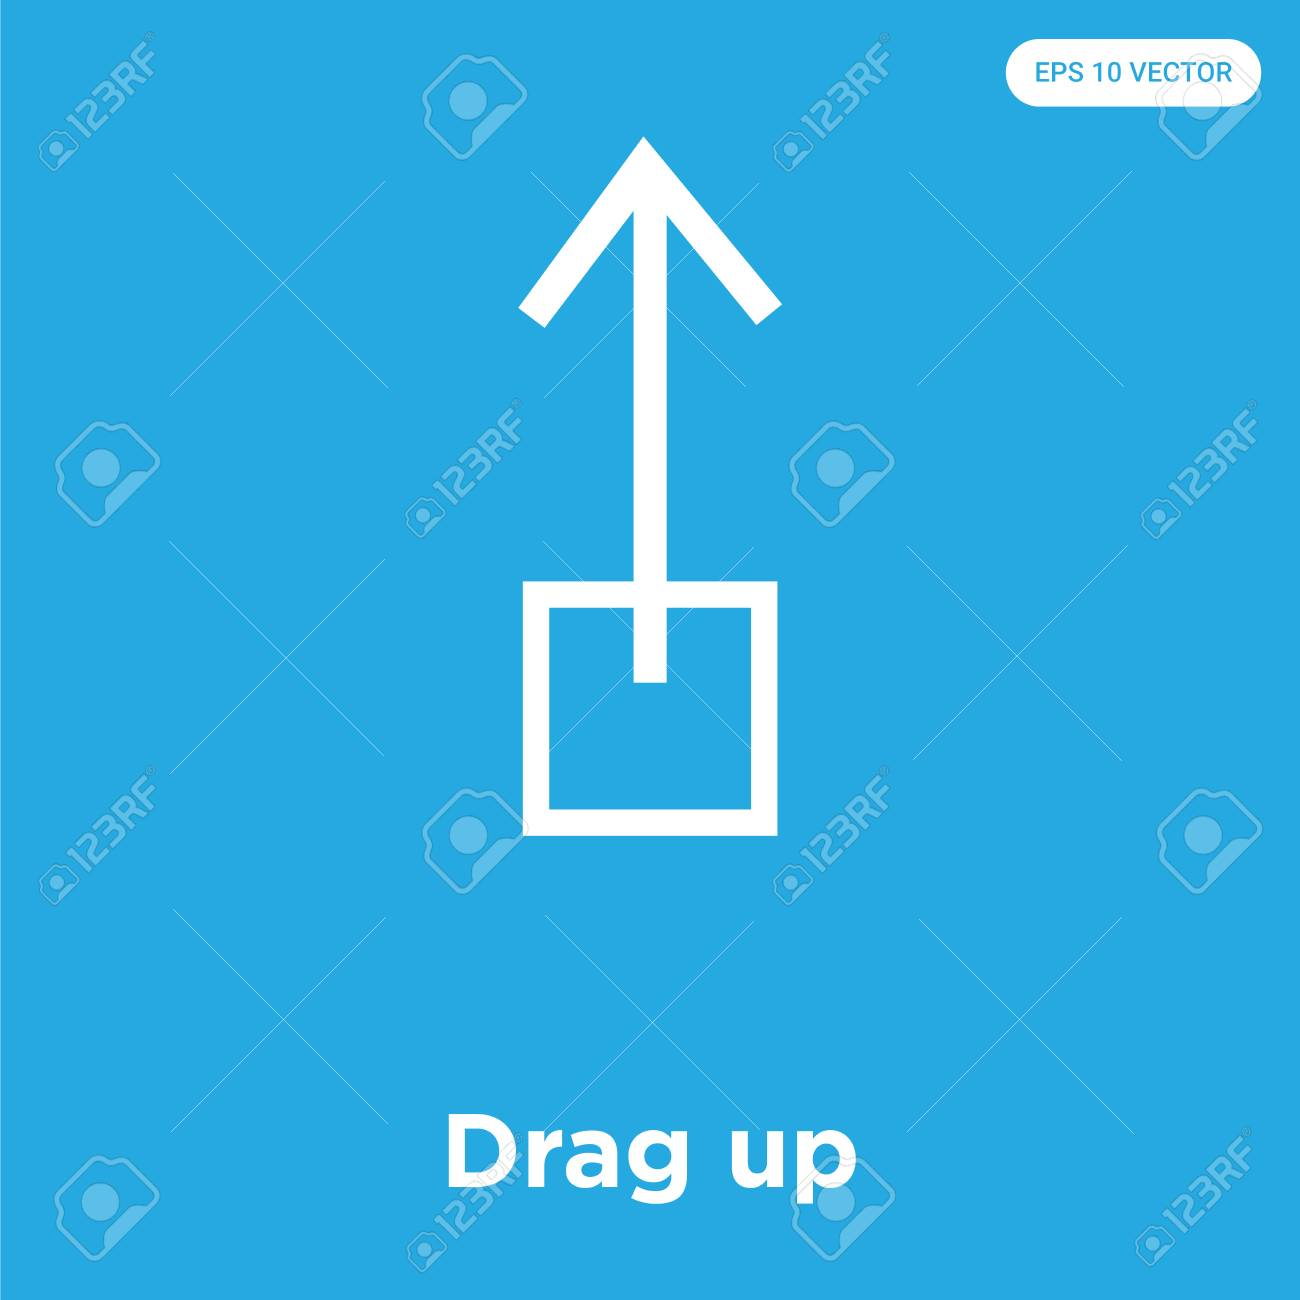 Drag up vector icon isolated on blue background, sign and symbol, Drag up icons collection - 114806111